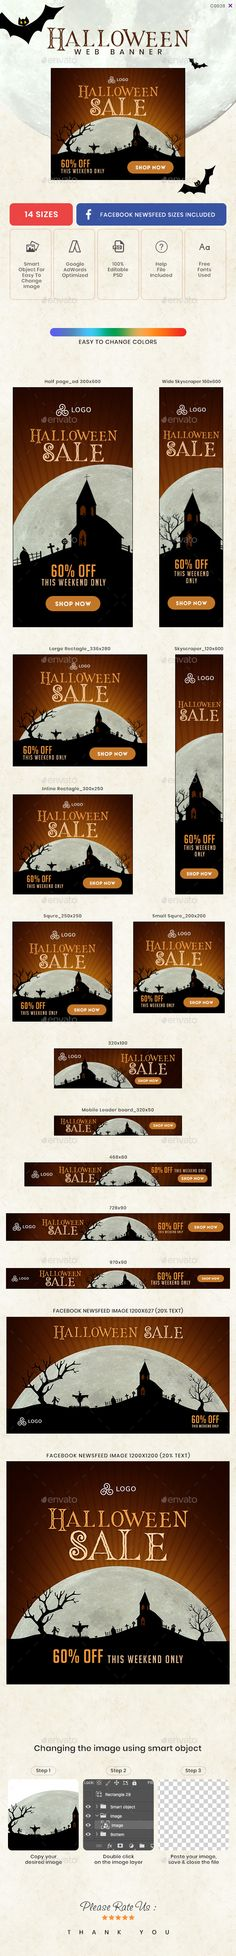 Buy Halloween Sale Web Banner Set by Kimp_io on GraphicRiver. Promote your Products and services with this great looking Banner Set. Halloween Flyer, Halloween Sale, Facebook Ad Size, Website Promotion, Web Banners, Banner Template, Goods And Services, Free Images, The Help